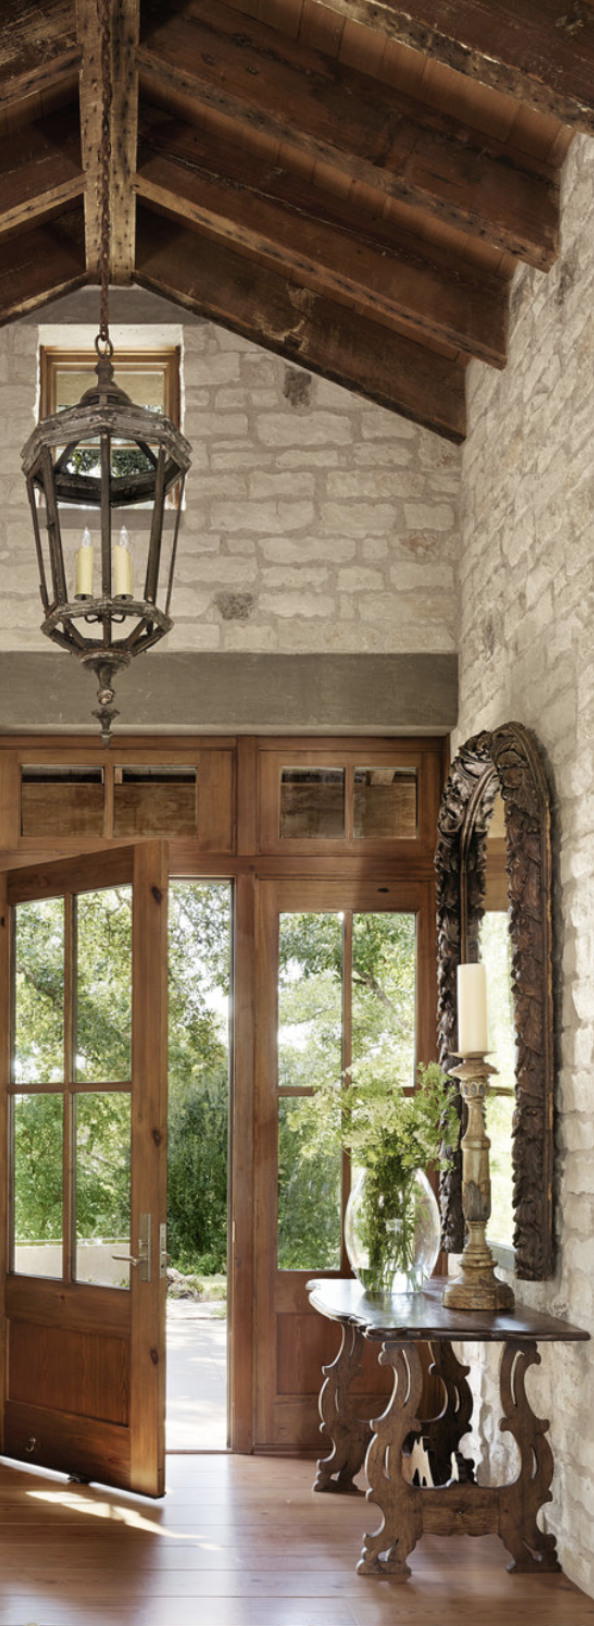 Rustic Foyer Mirror : Rustic elegance foyer with vault wood beams french